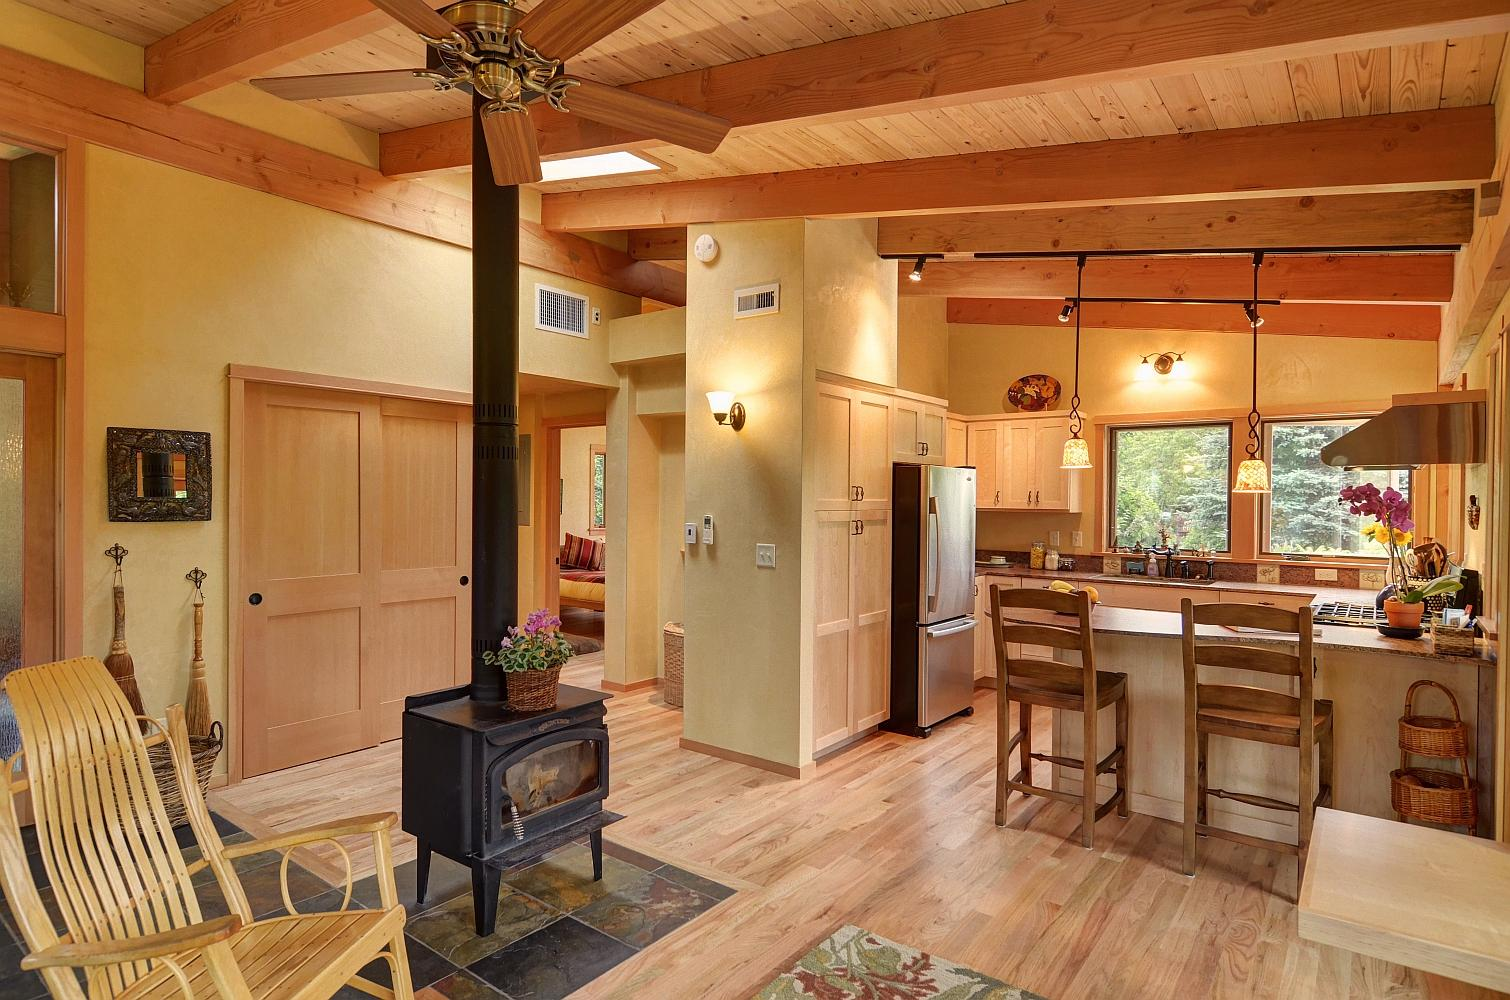 River Road House, A Beautiful And Sustainable Timber Frame Home With Two  Bedrooms In 800